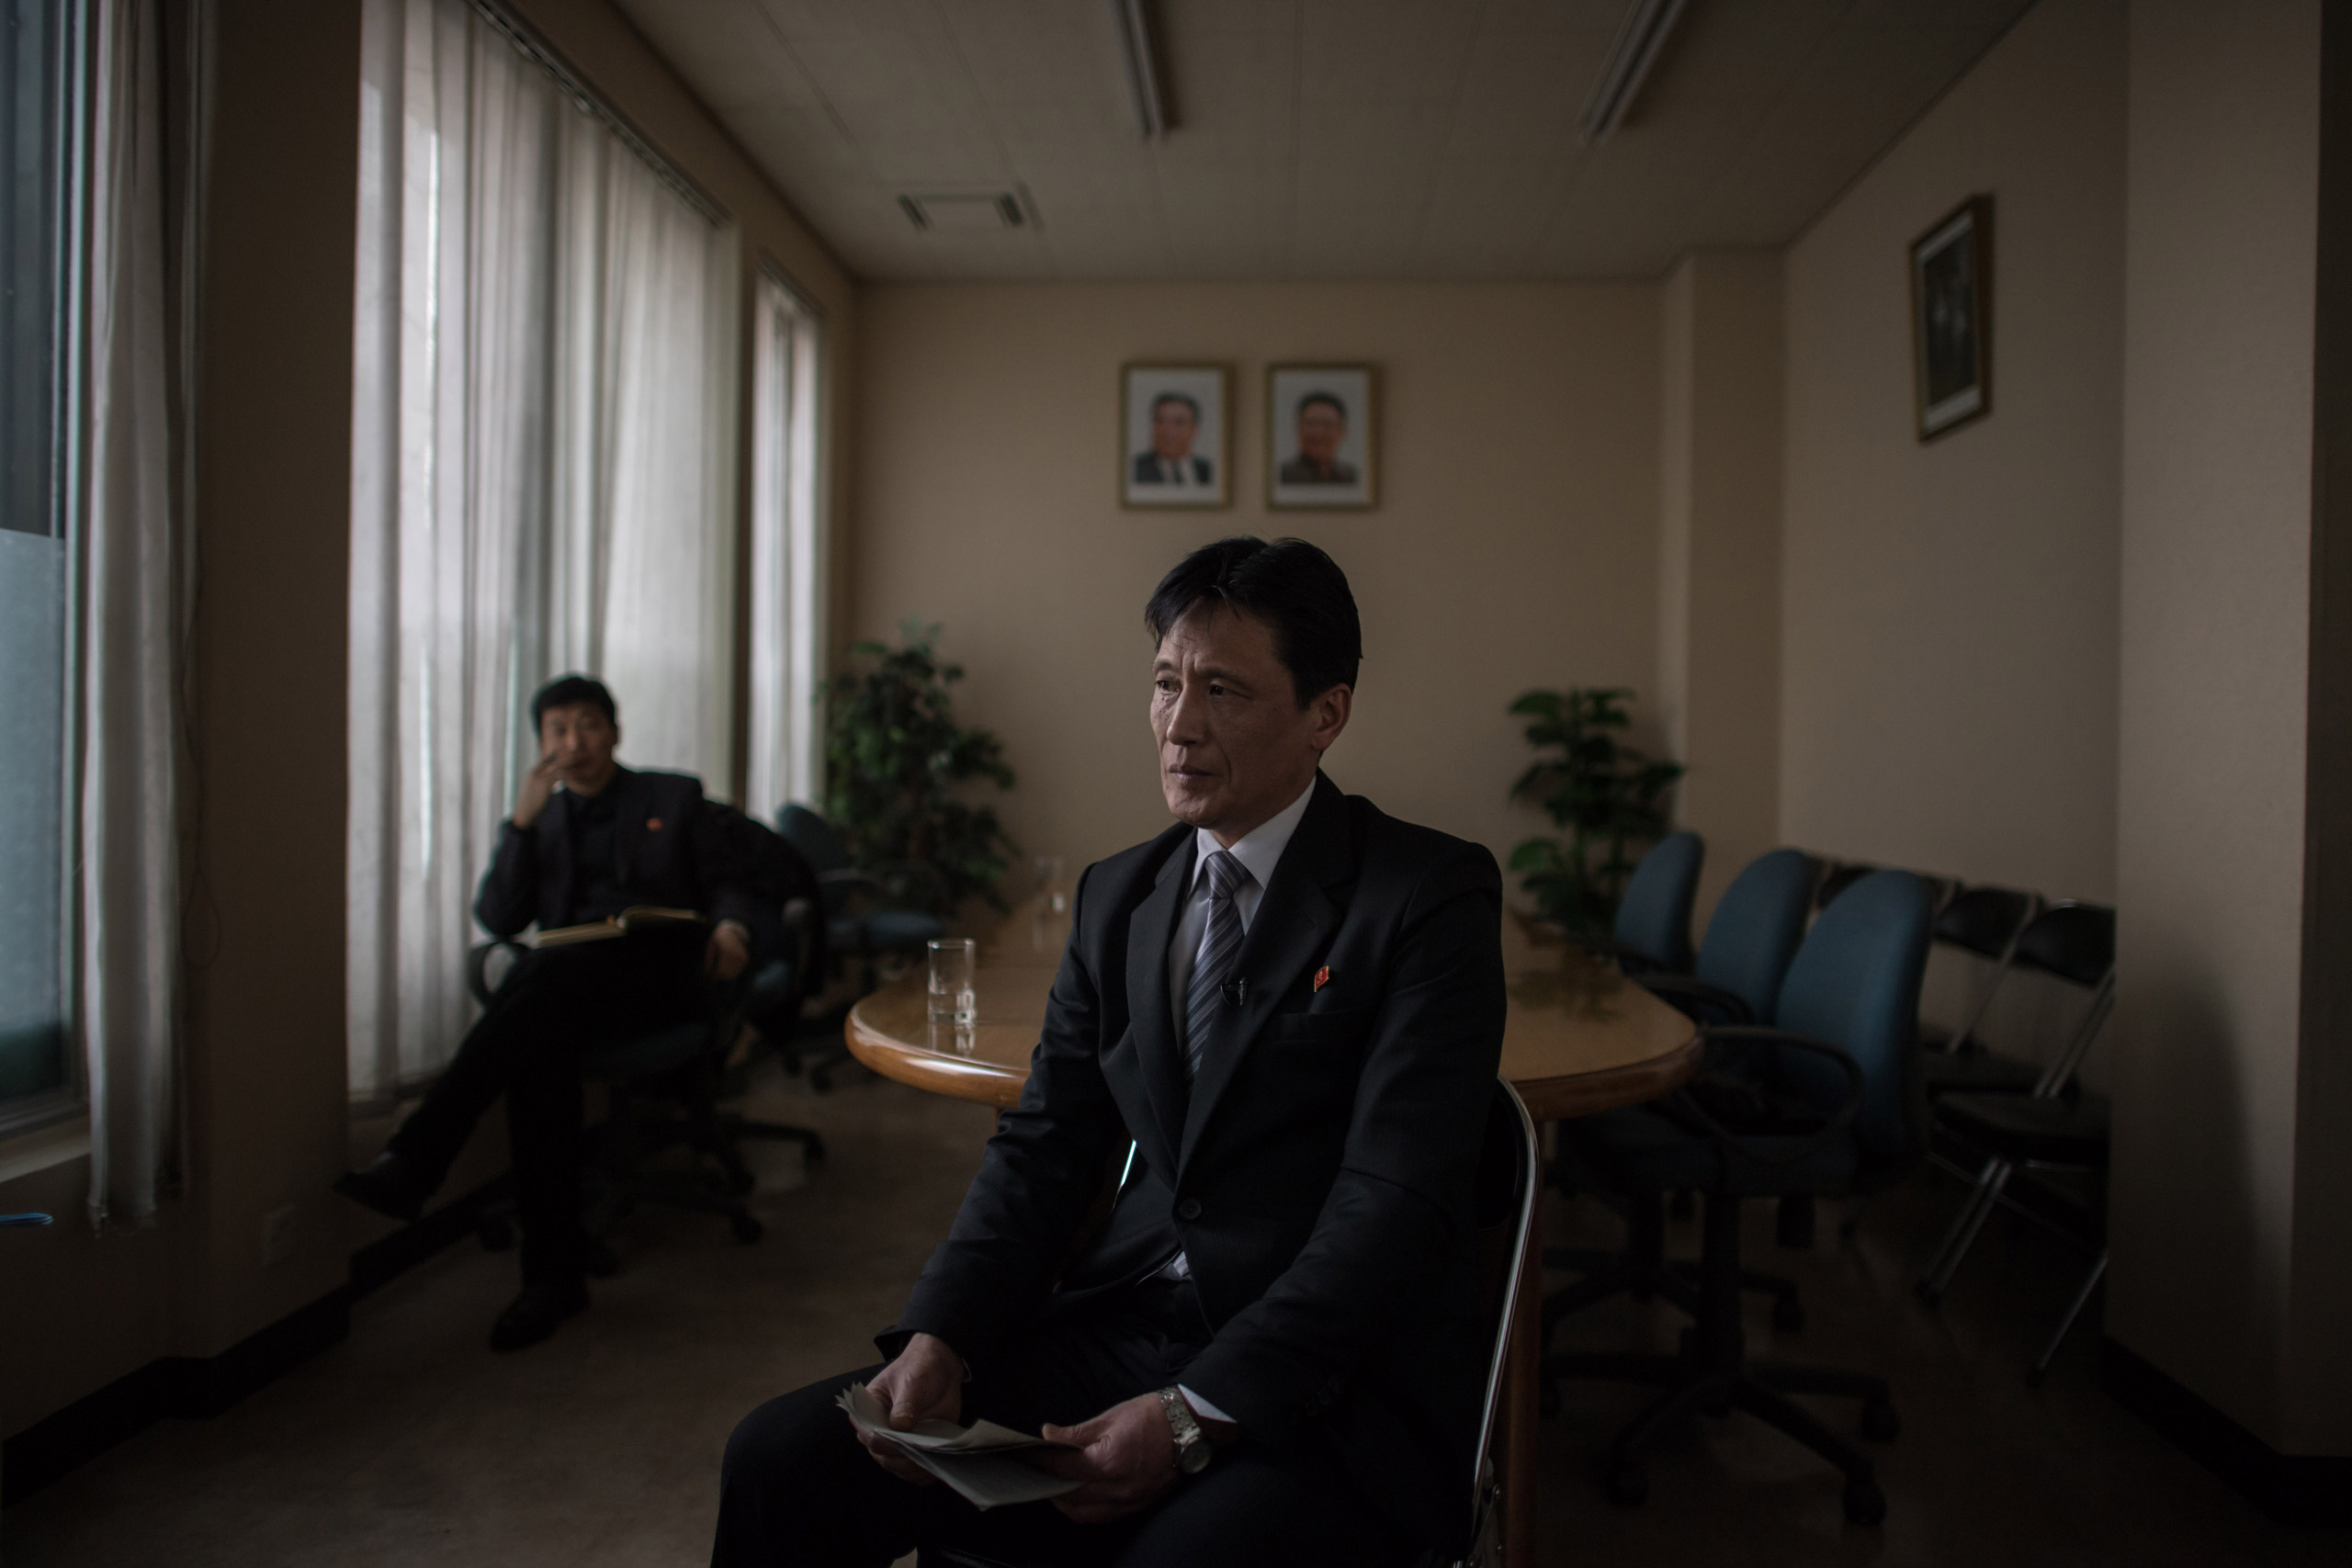 Ri Sun-Chol, chief of the economic research institute of the North Korea's Academy of Social Sciences speaks to AFP in Pyongyang on Feb. 21, 2017. A North Korean state economic official sought to play down the impact of China's shock announcement that it was suspending coal imports from the country for the rest of the year.